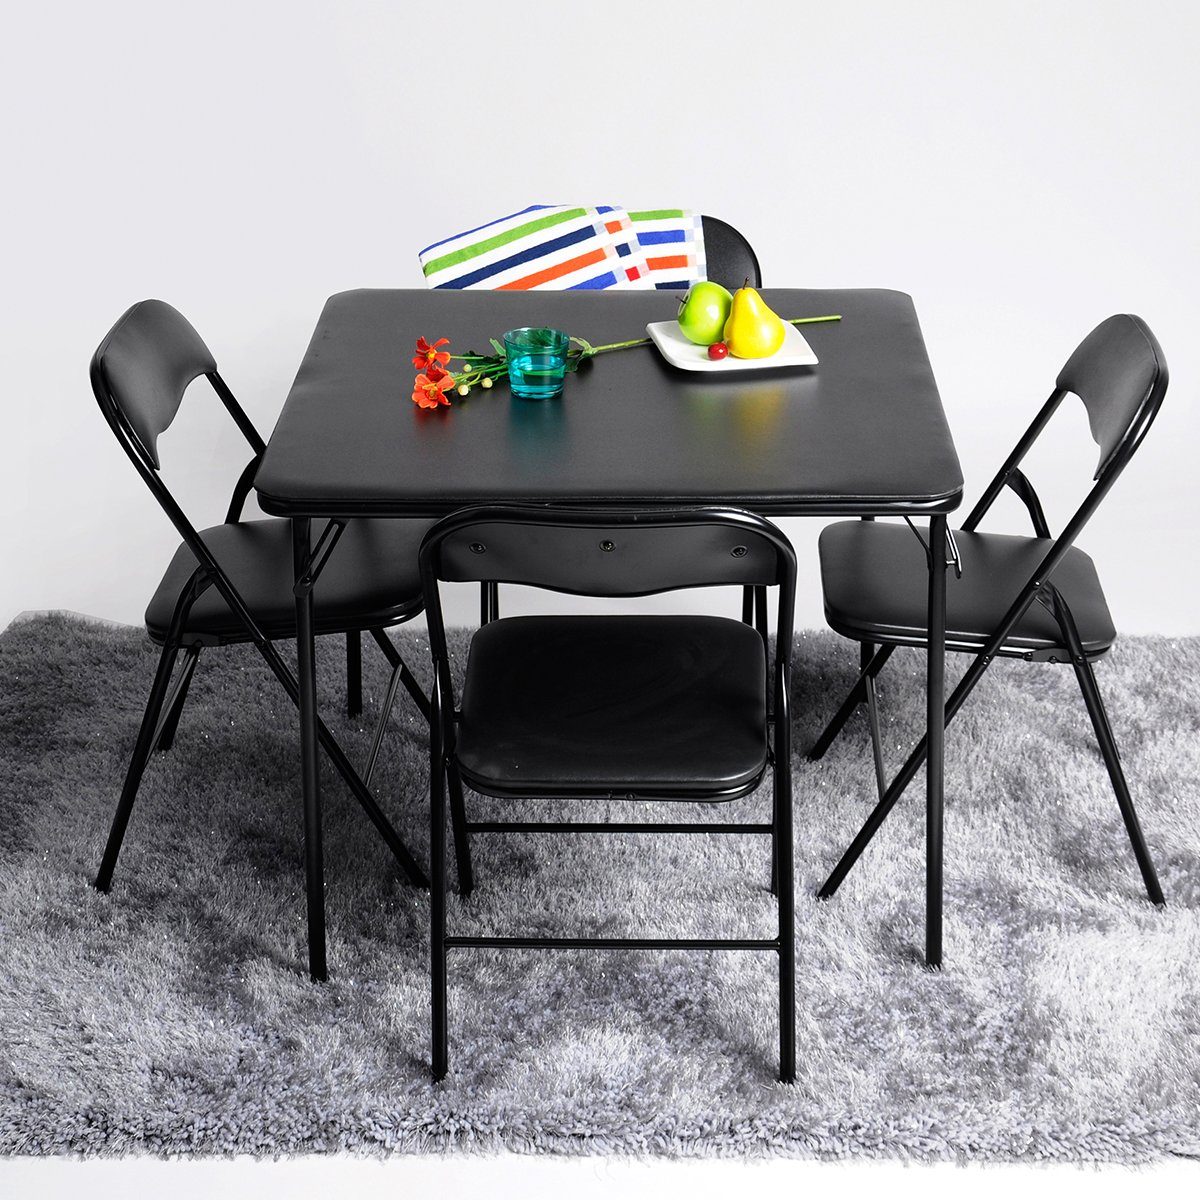 5pc Folding Table & Chairs Parties Portable Furniture Dining Set Card Poker Game